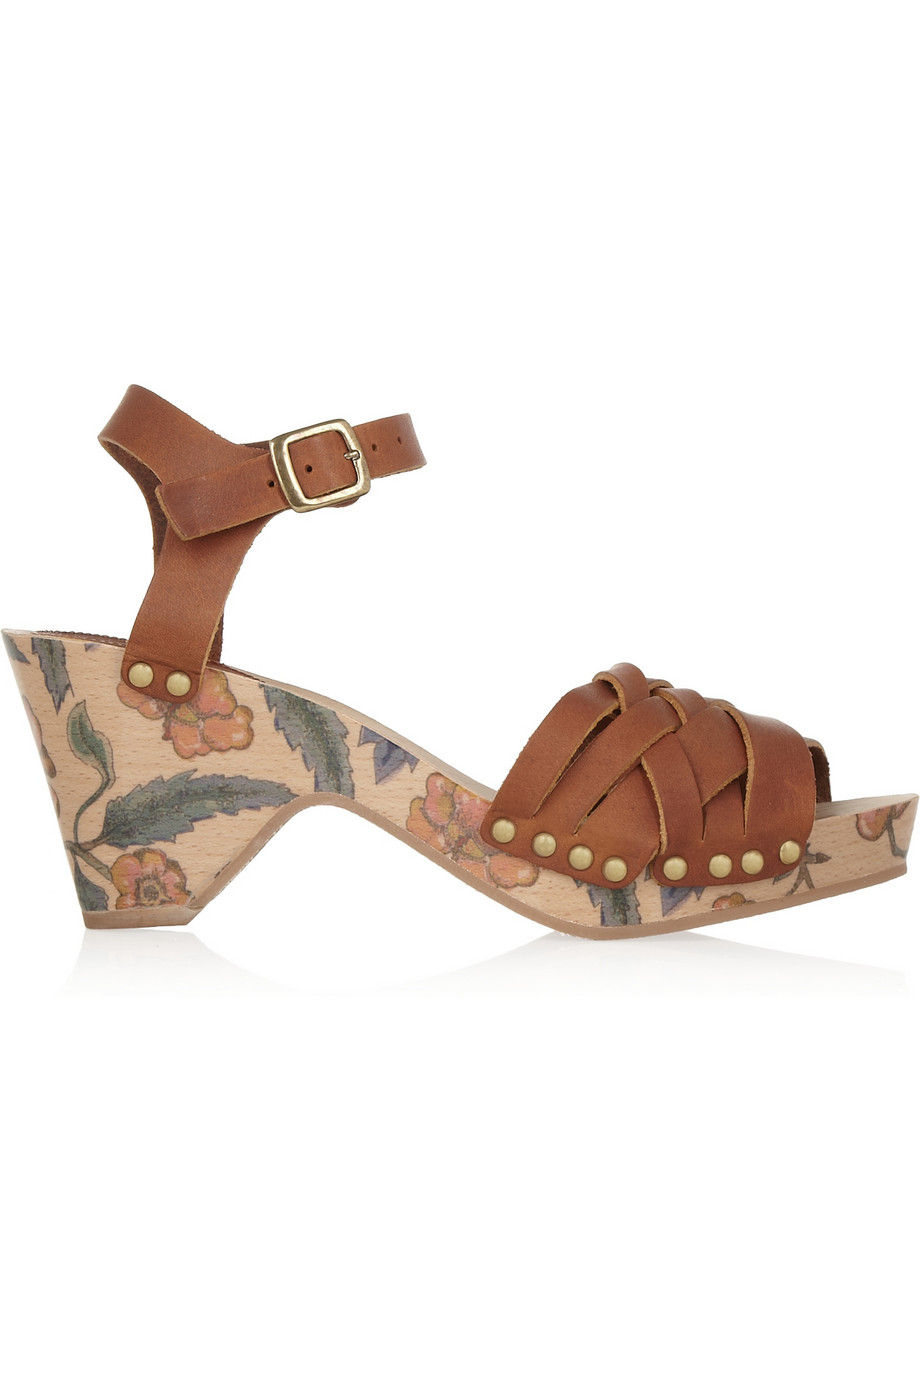 Print leather sandals – 60% at the outnet.com